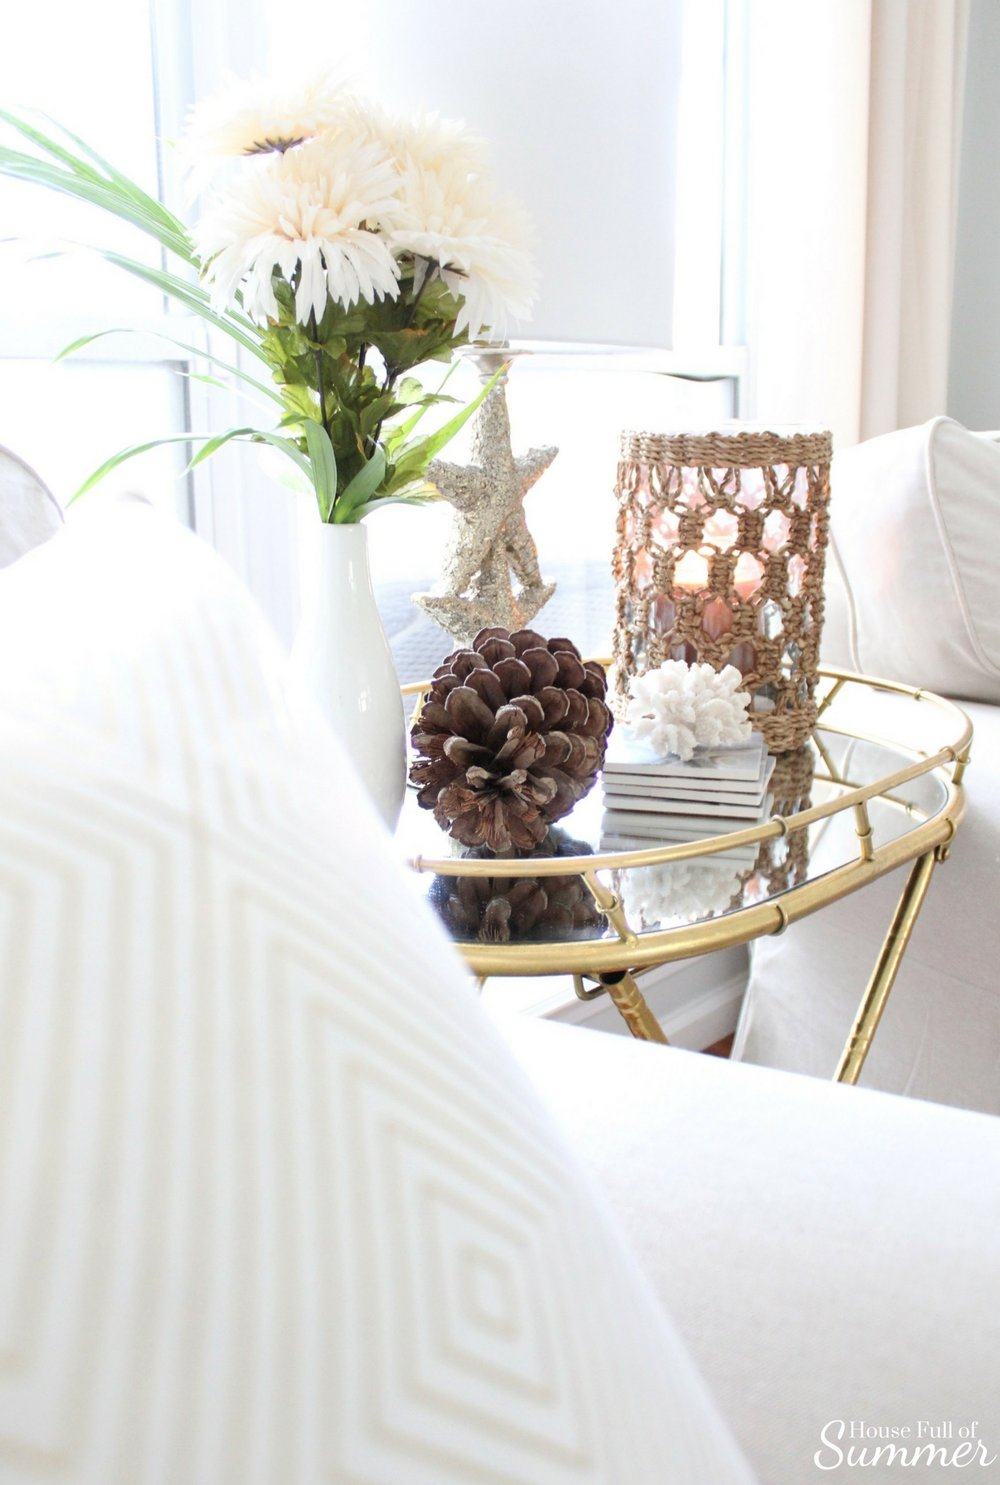 House Full of Summer: Fall Home Tour Blog Hop - Cozy, Coastal, Chic Living Room fall decorating ideas. Neutral interior, living room decor, gold bamboo folding table, mirrored side table, throw pillow covers, faux fall florals, living room ideas, sitting room, wood floors, table styling, pine cones, gold accents